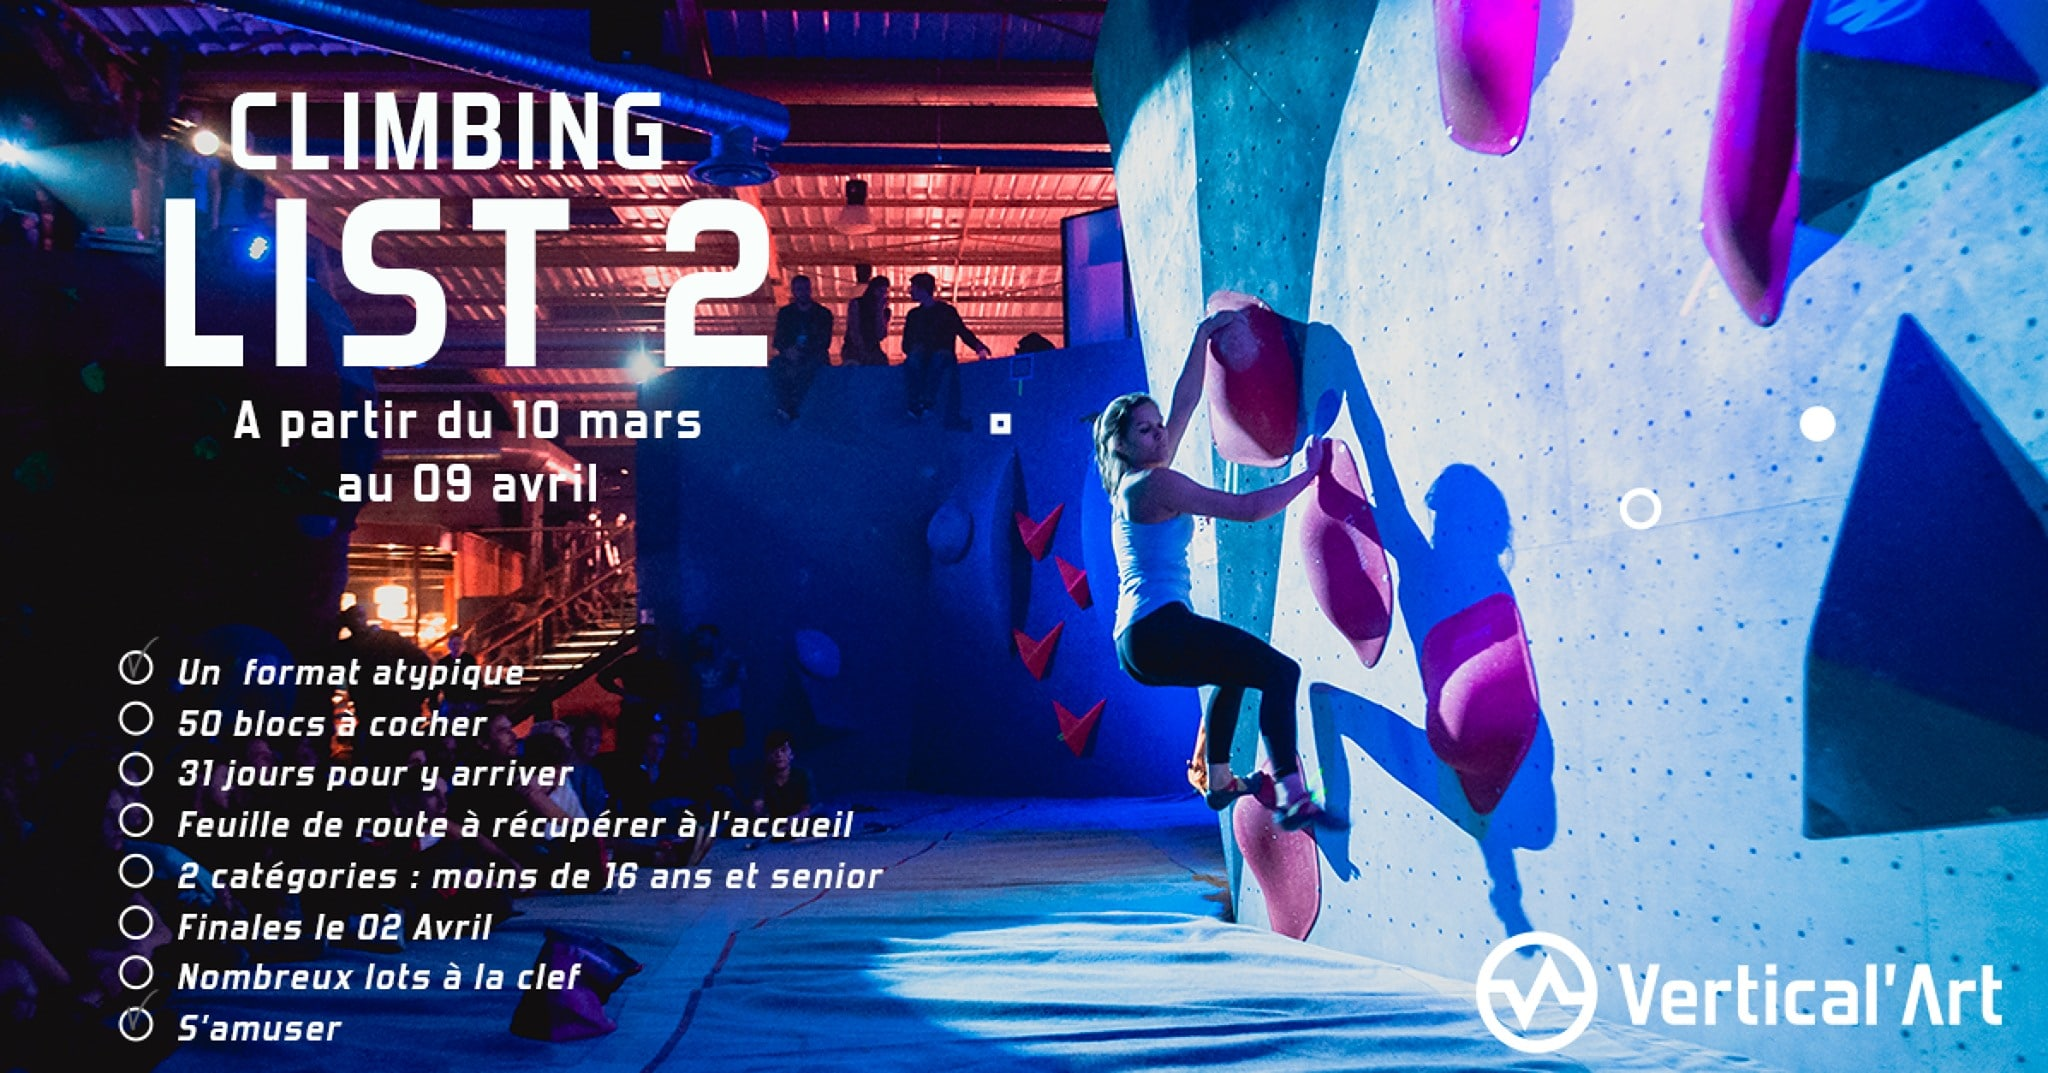 Contest Vertical'Art Nantes - La Climbing List 2- Vertical'Art Nantes - 3 semaines de contest - 50 blocs